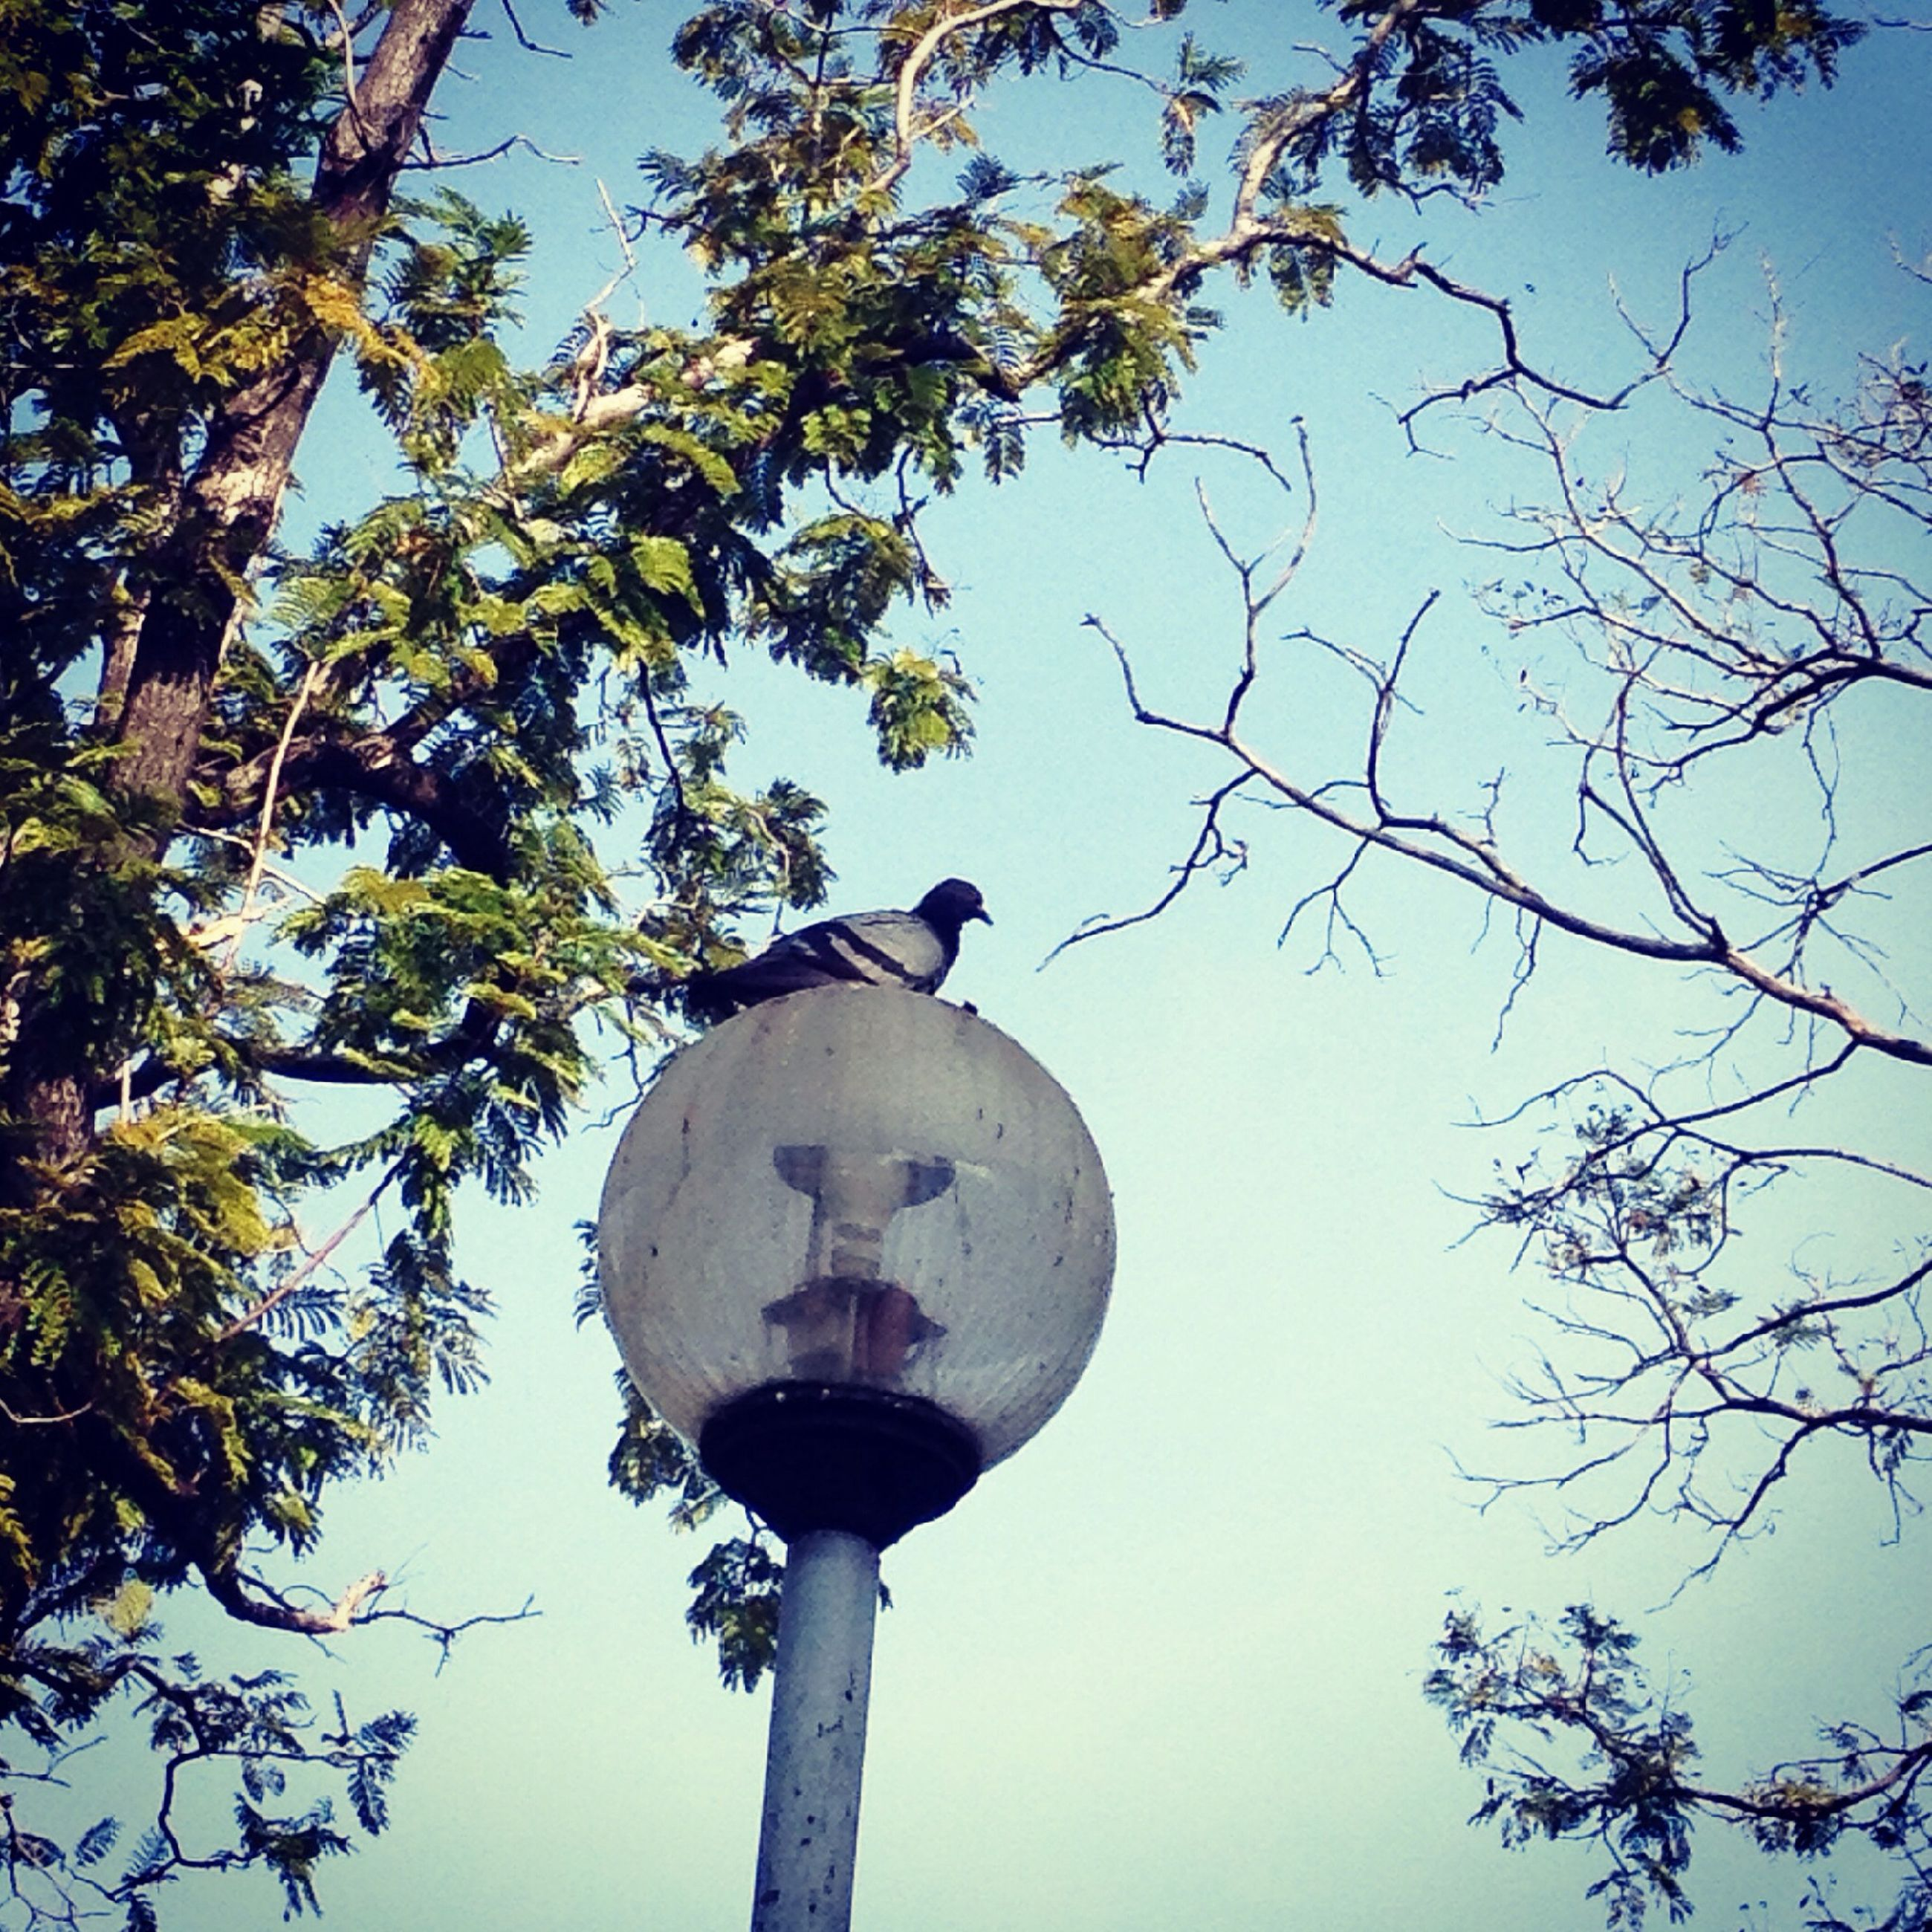 low angle view, tree, street light, branch, sky, lighting equipment, communications tower, clear sky, tower, communication, built structure, bird, architecture, tall - high, high section, day, sphere, lamp post, outdoors, no people